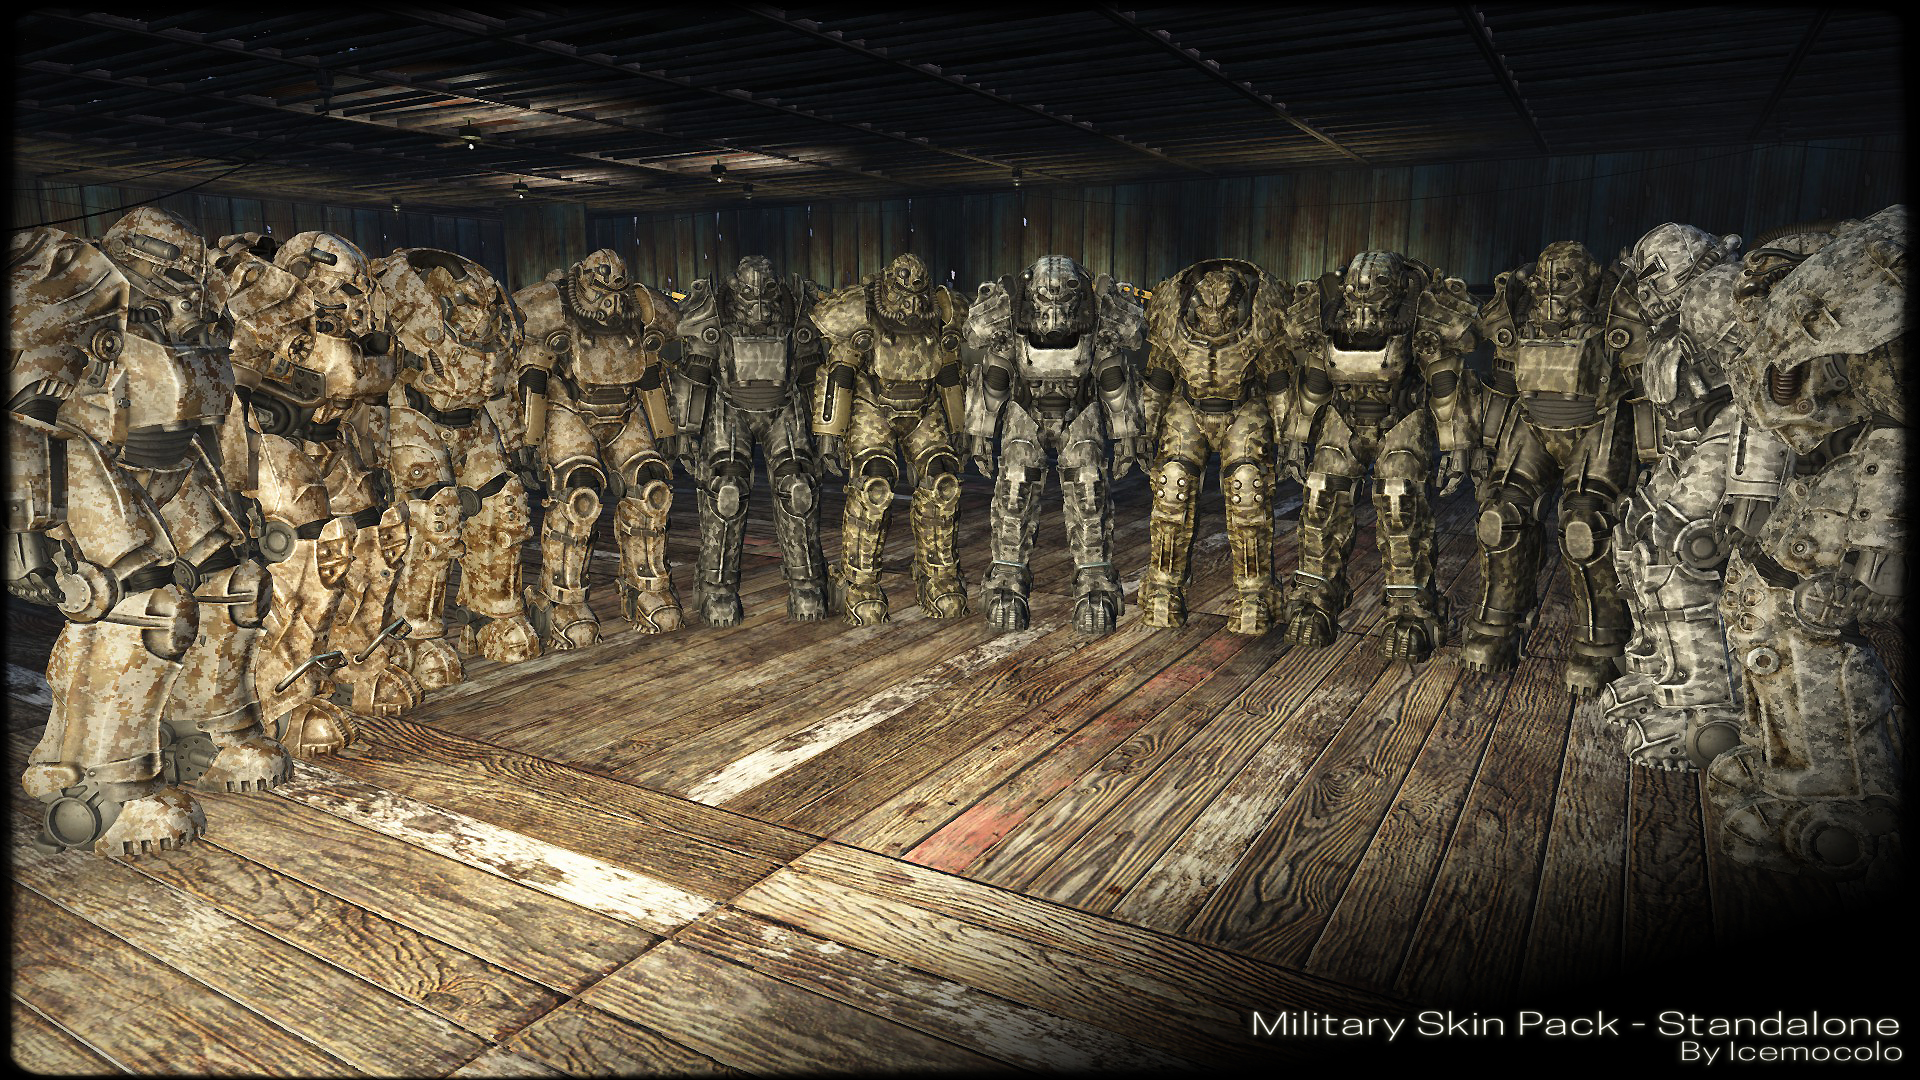 Military Power Armor Skin Pack - Standalone at Fallout 4